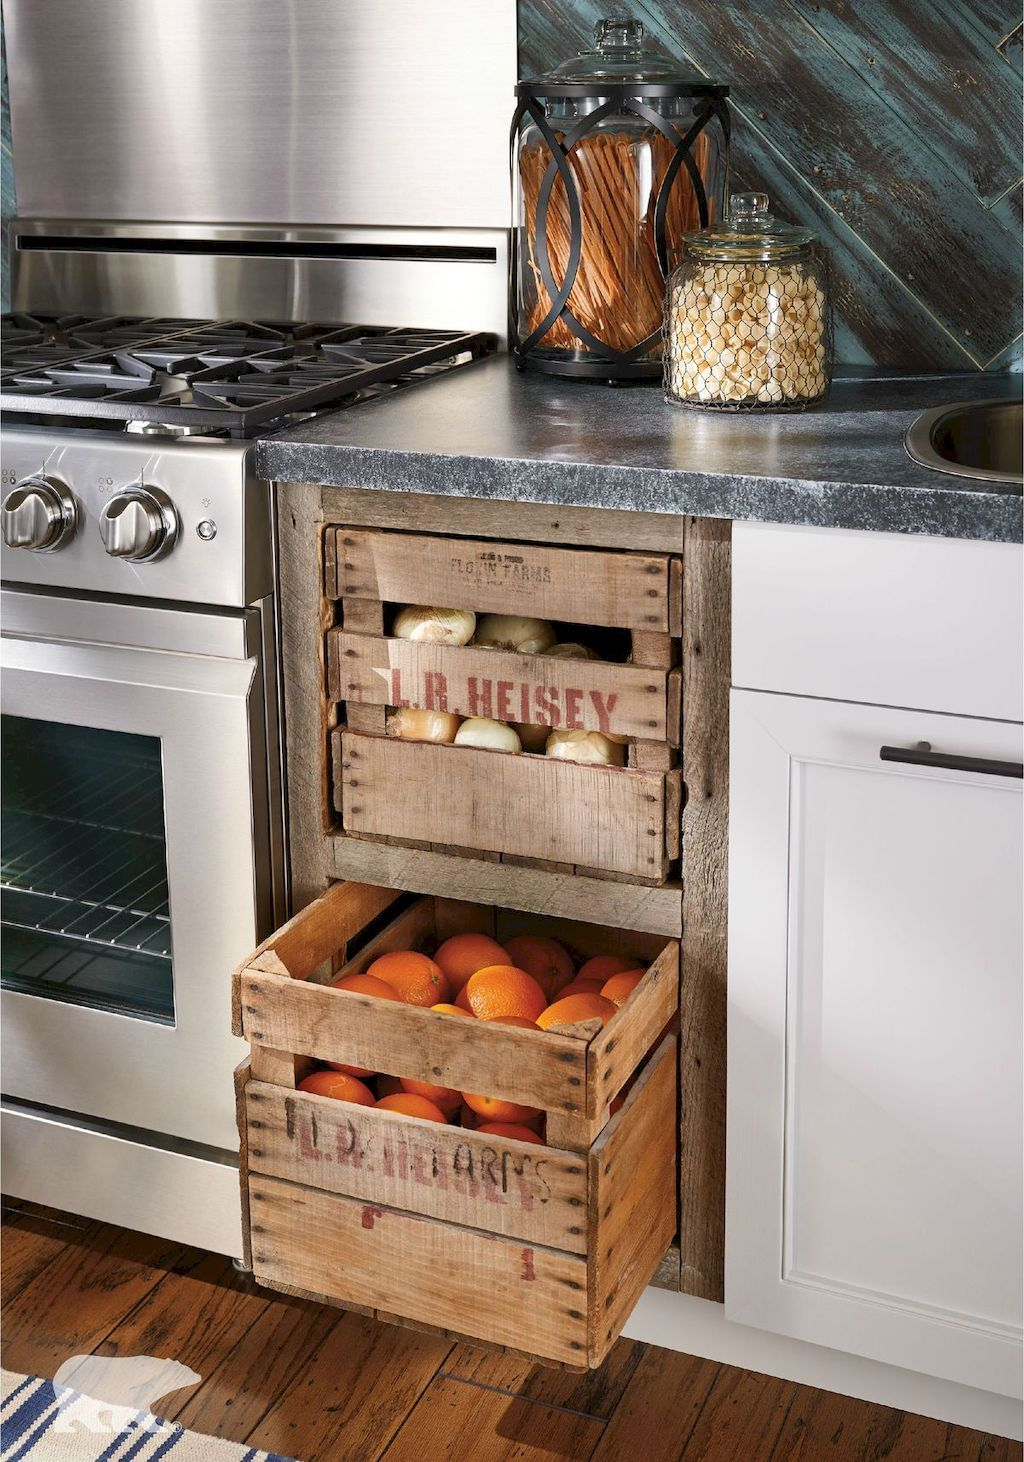 Küche Dekorieren Pinterest Nice 40 Brilliant Diy Kitchen Organization Ideas Https://homespecially.com/40-brilliant-diy-kitchen-organization-idea… | Rustic Kitchen, Kitchen Decor, Kitchen Room